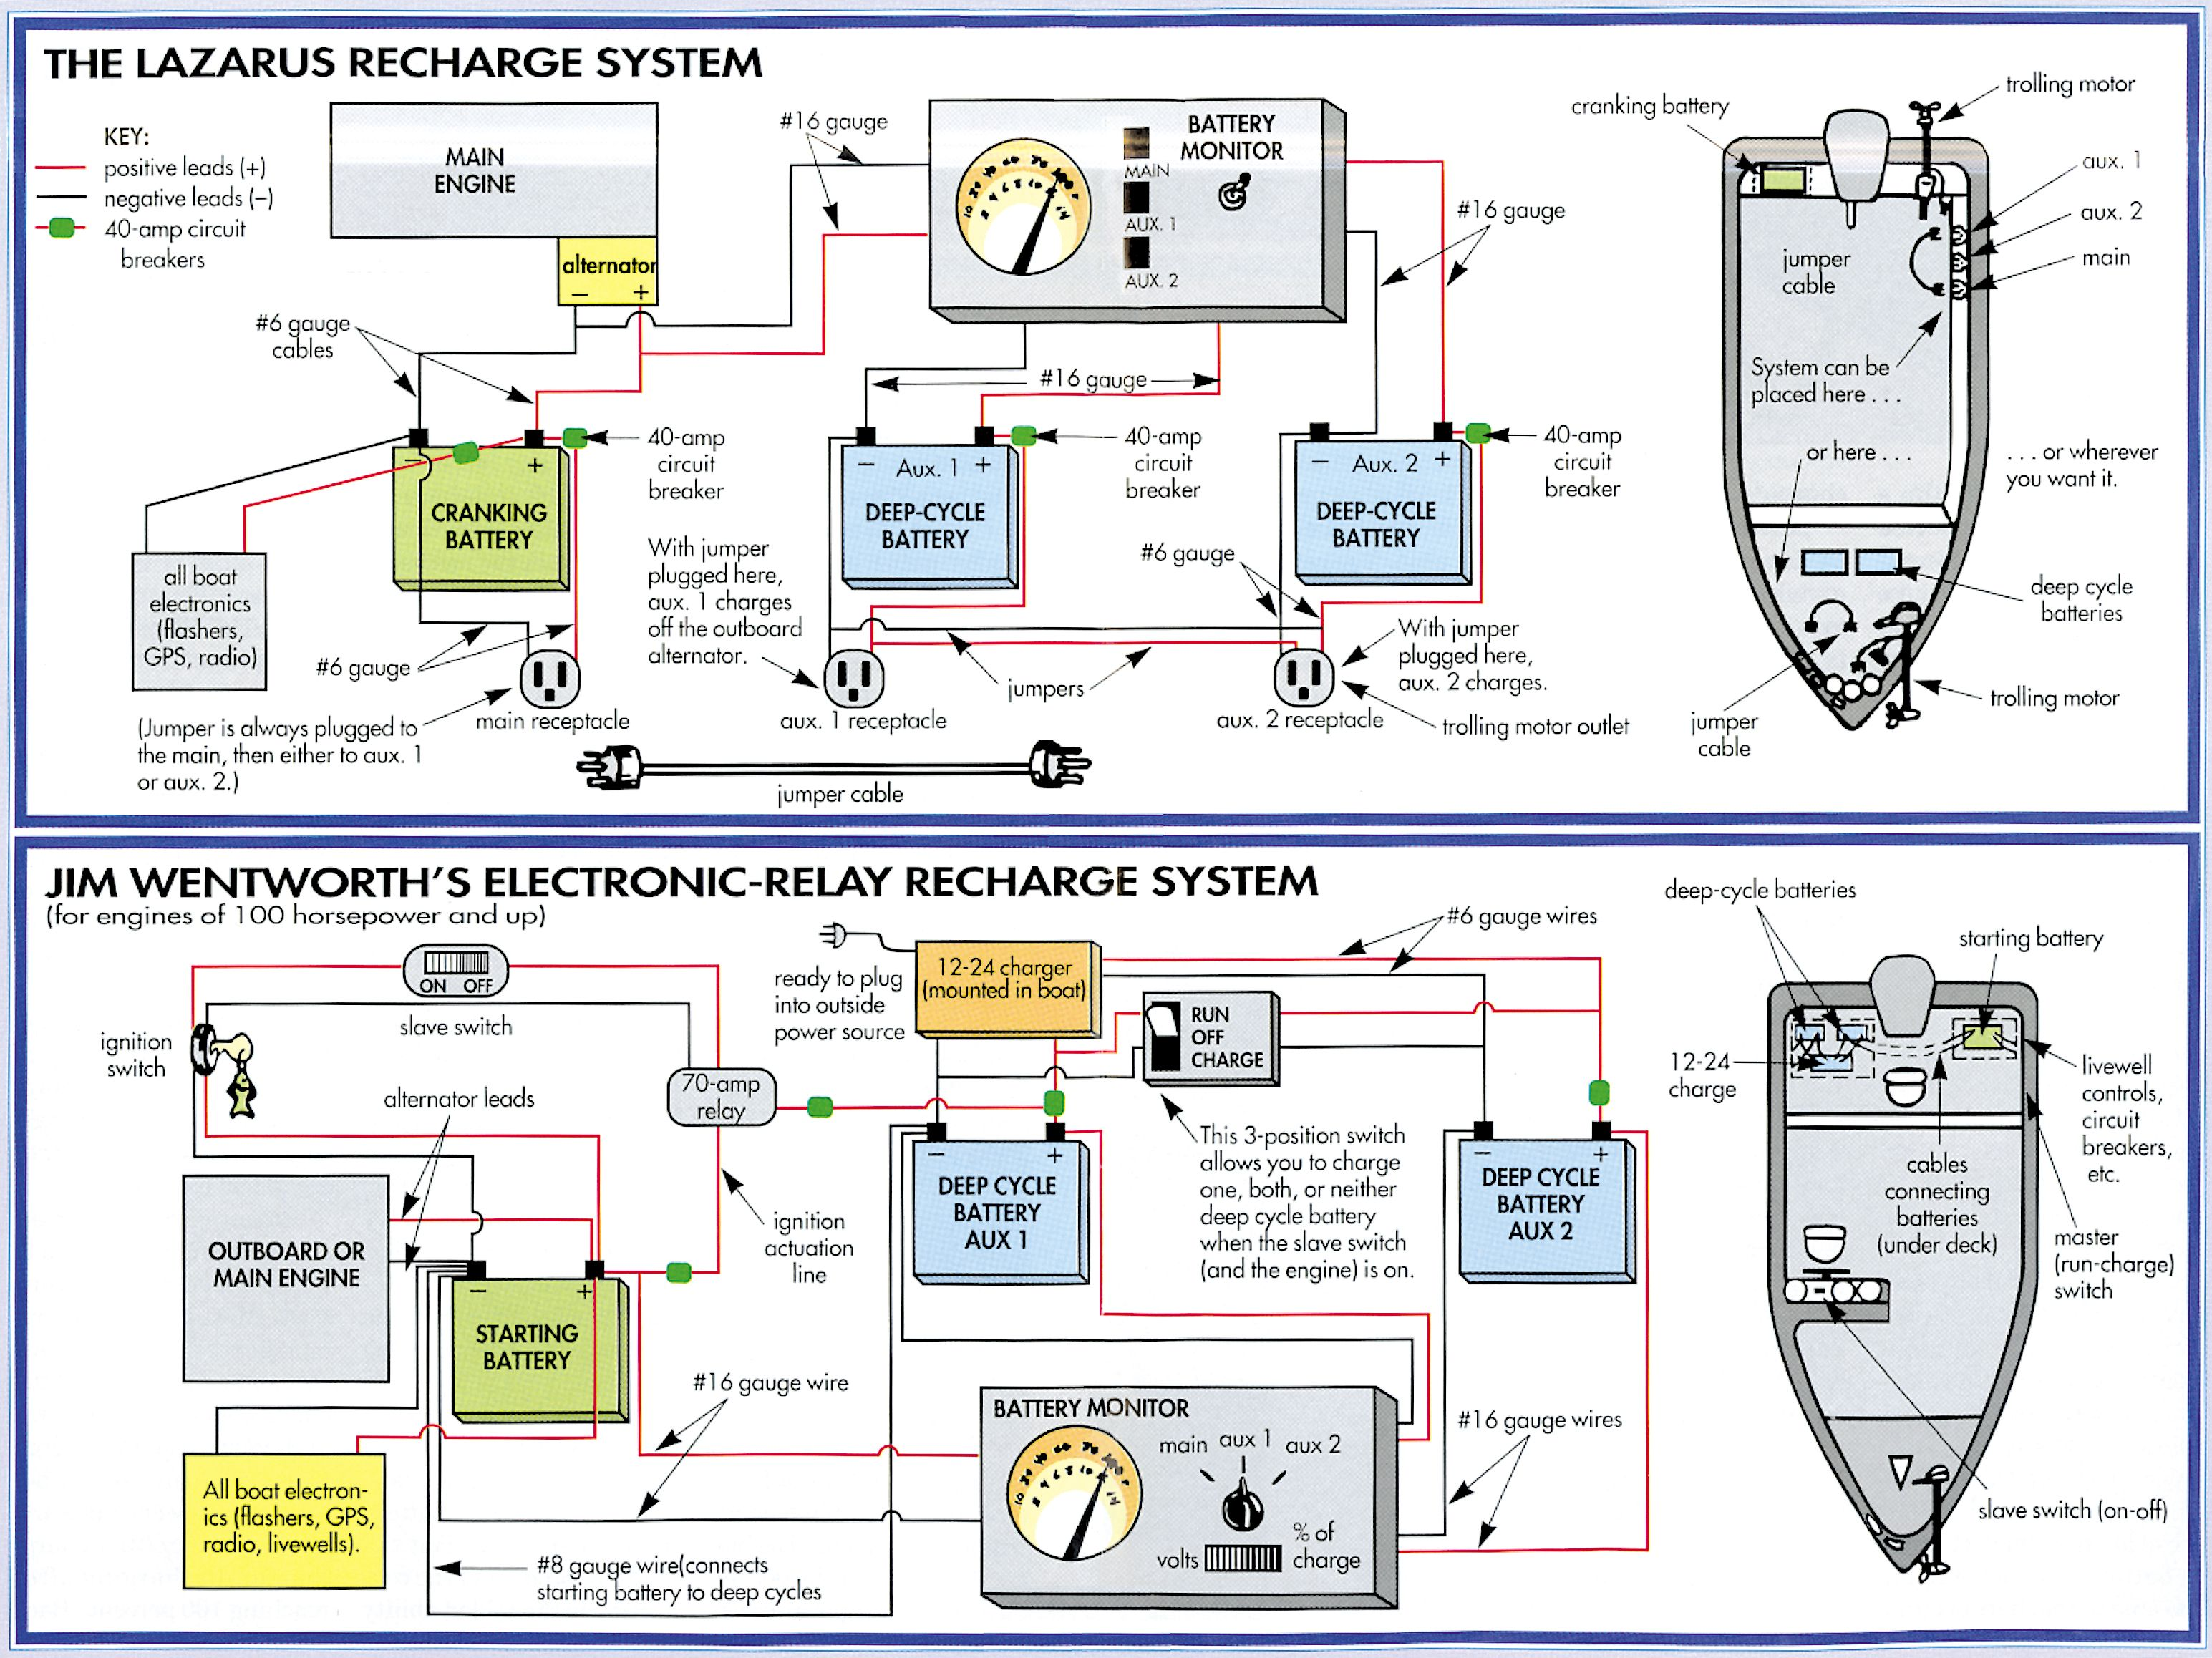 12 24 trolling motor wiring motorguide volt and battery diagram 24 volt battery wiring diagram [ 3090 x 2316 Pixel ]